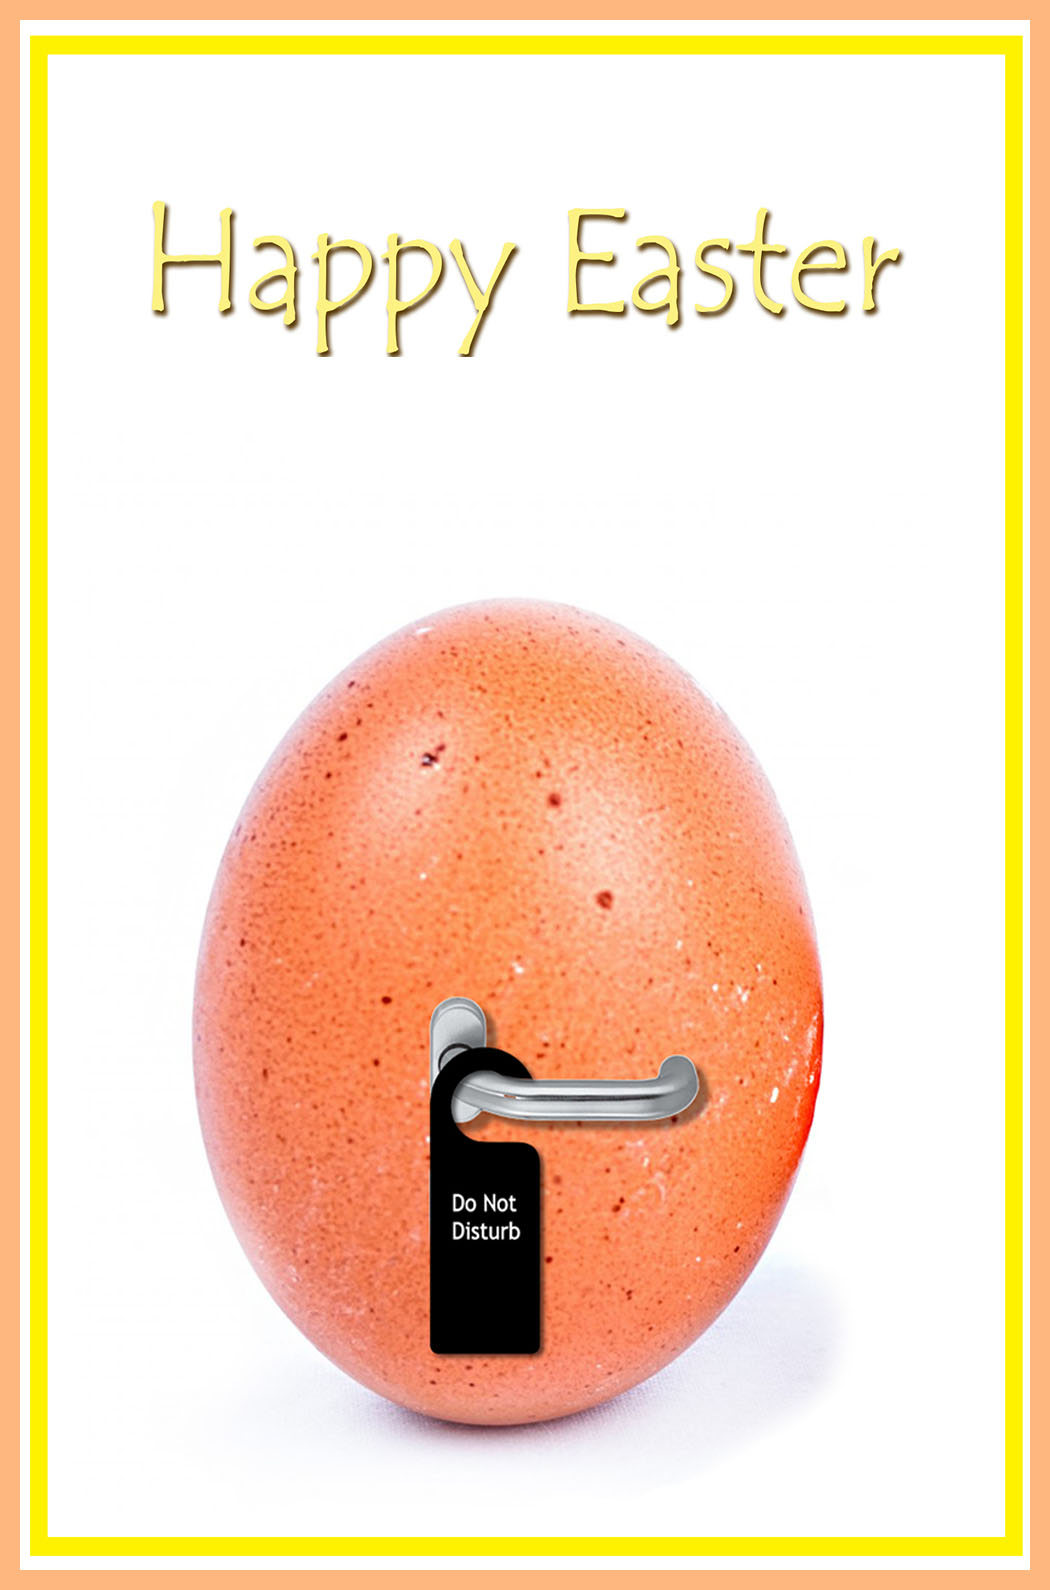 16 free funny easter greeting cards easter card with do not disturb note kristyandbryce Choice Image